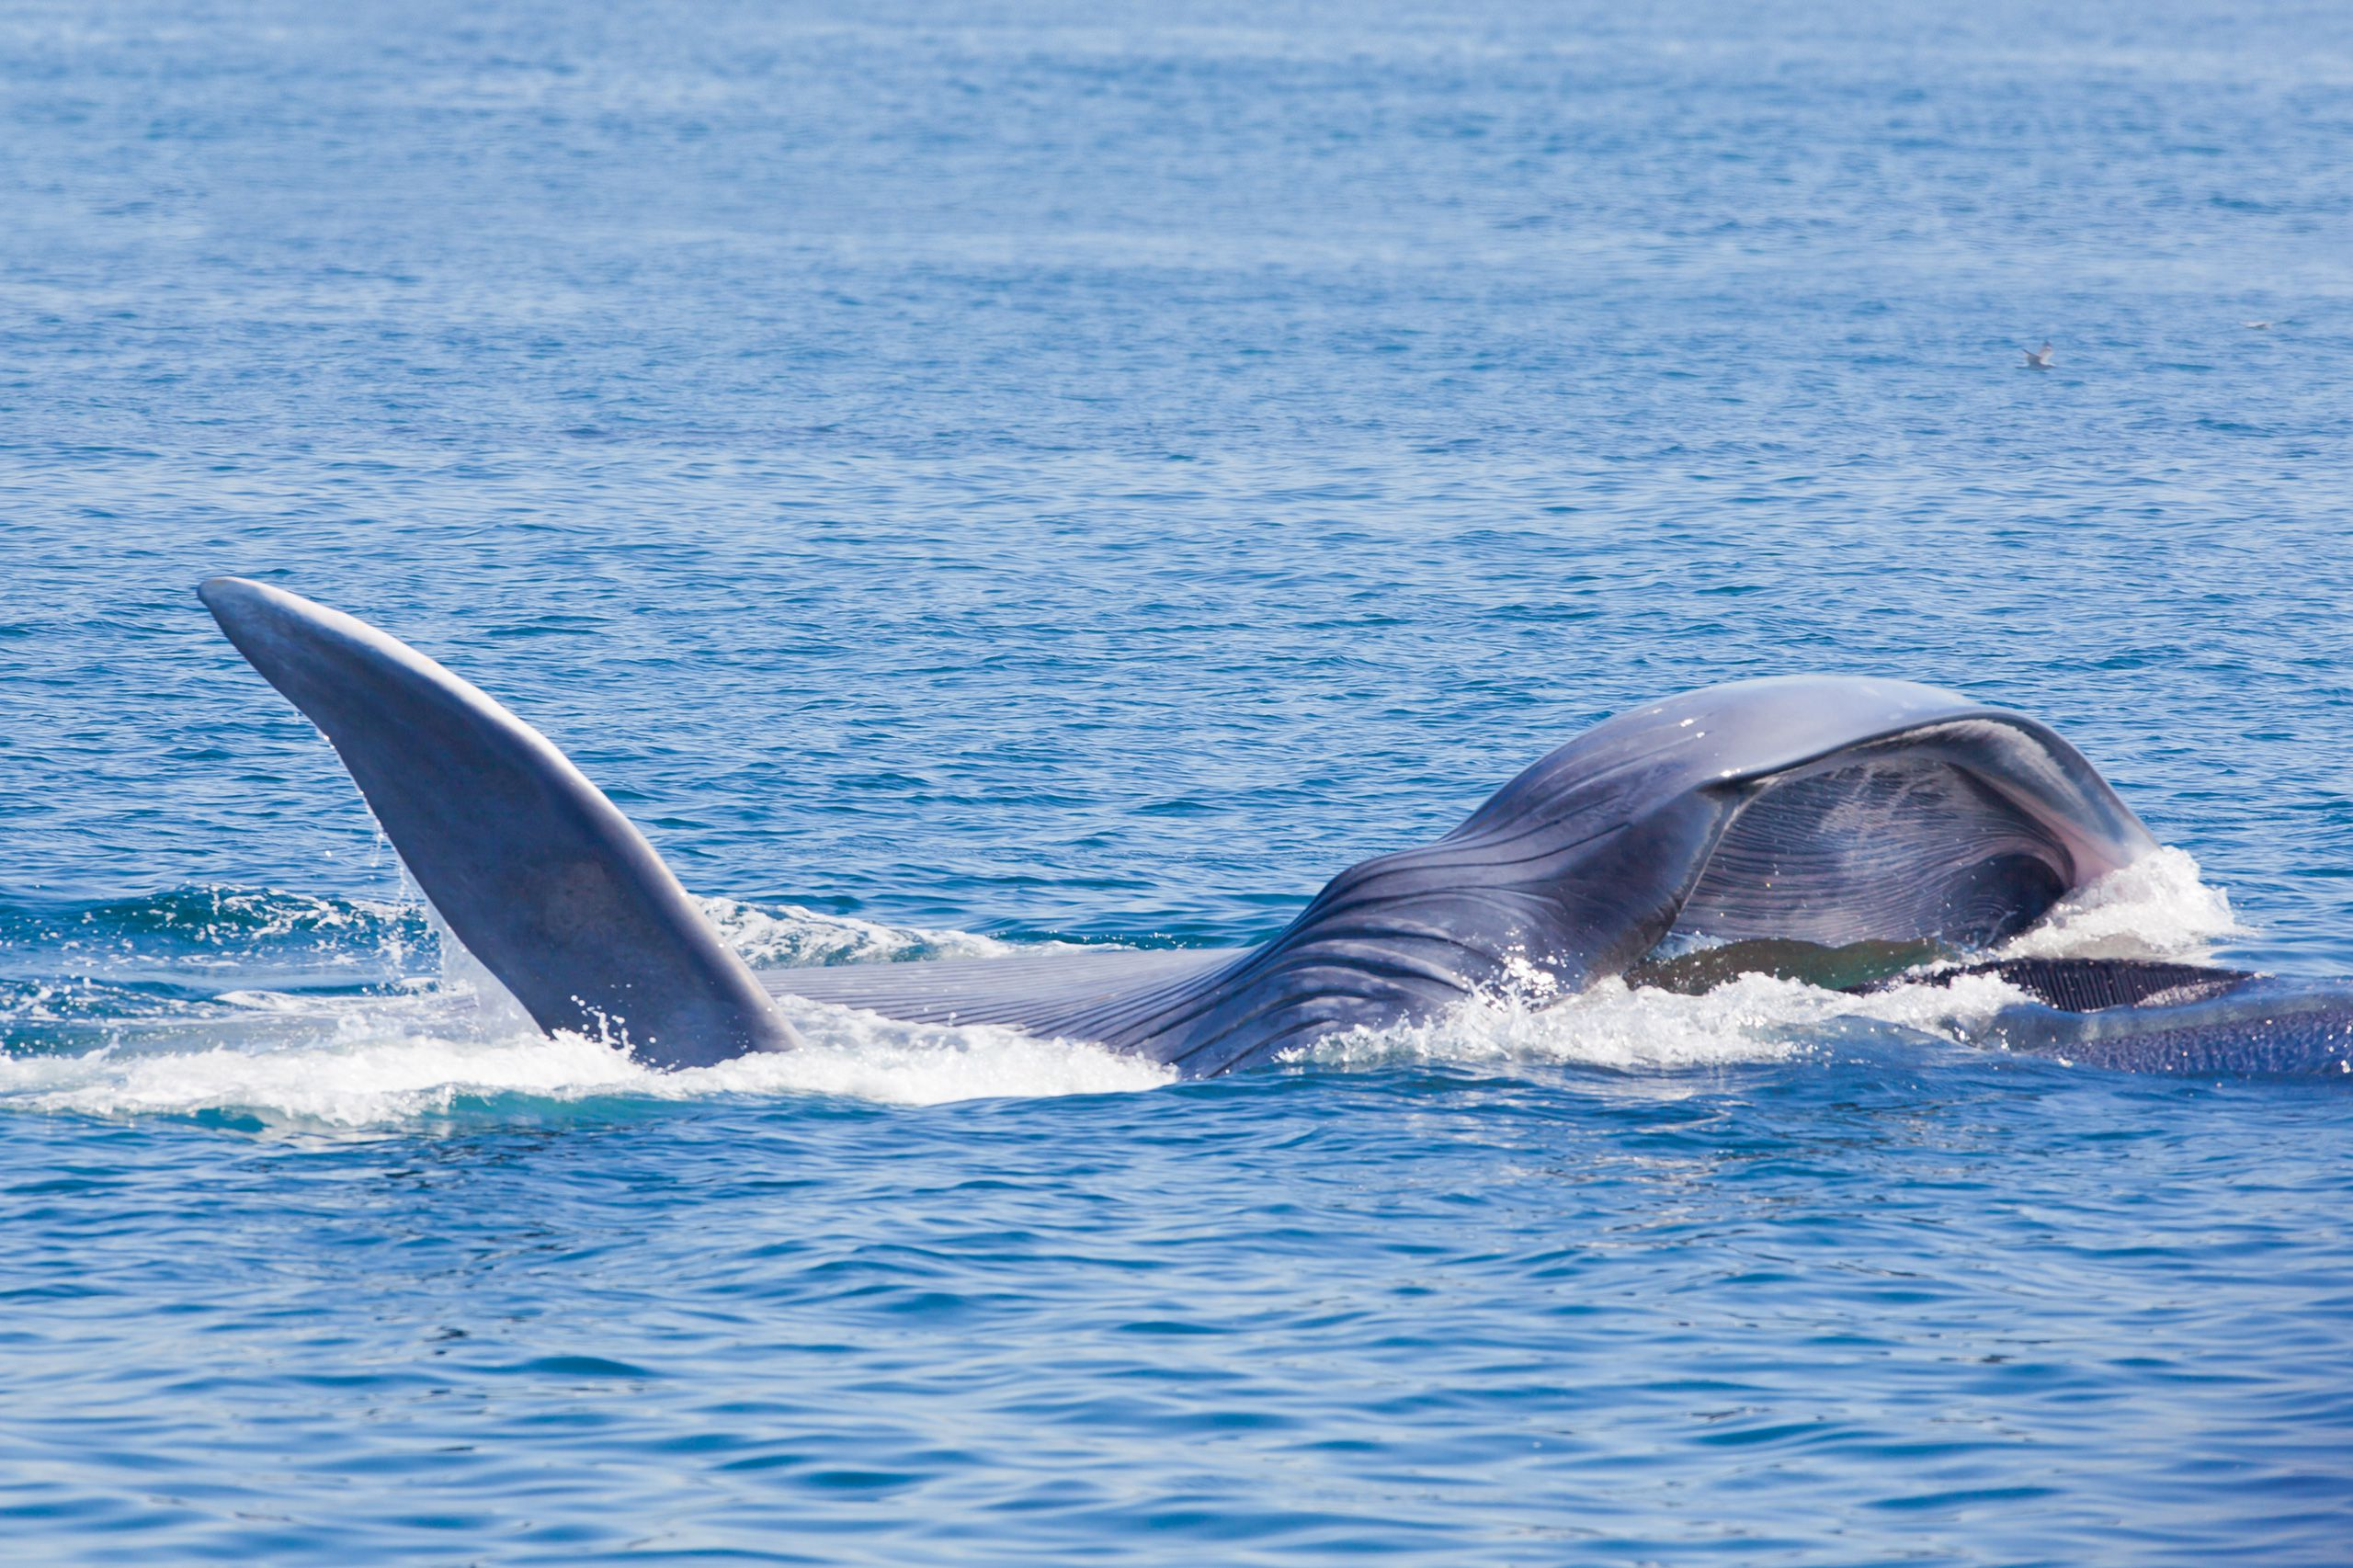 whale watching in los angeles and vicinity tips and best trips